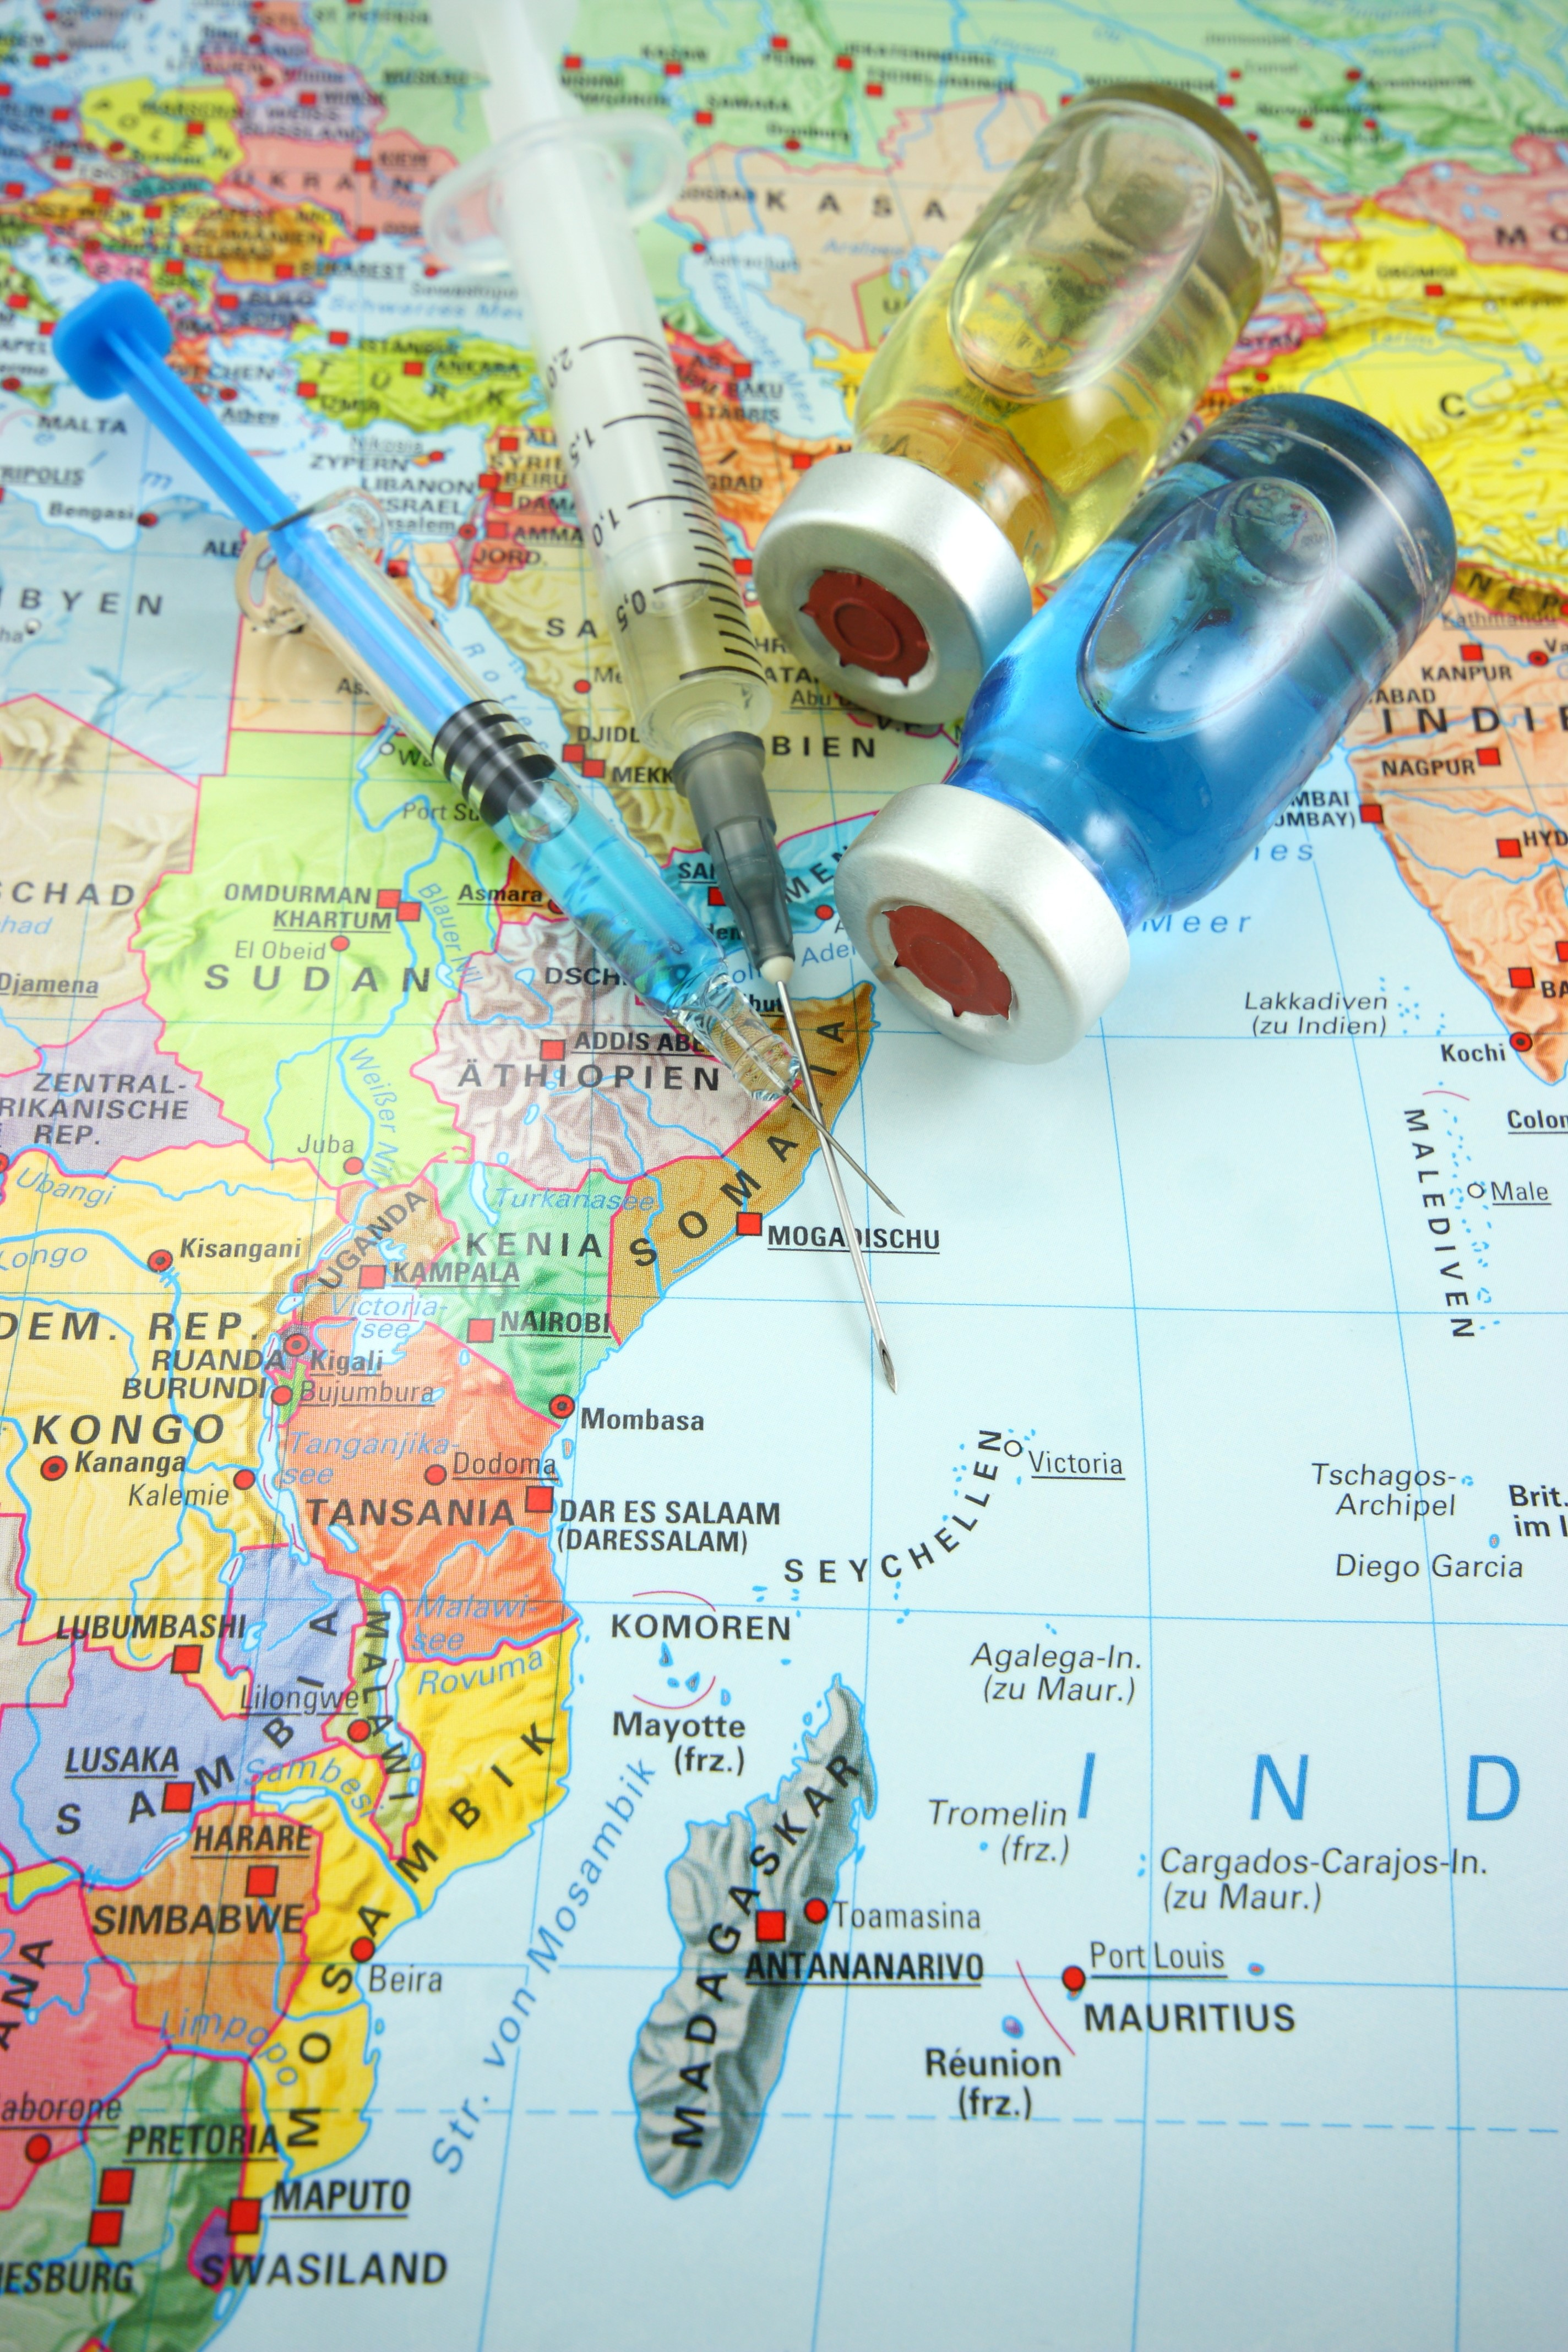 Vials of vaccines placed on top a map of Africa and India